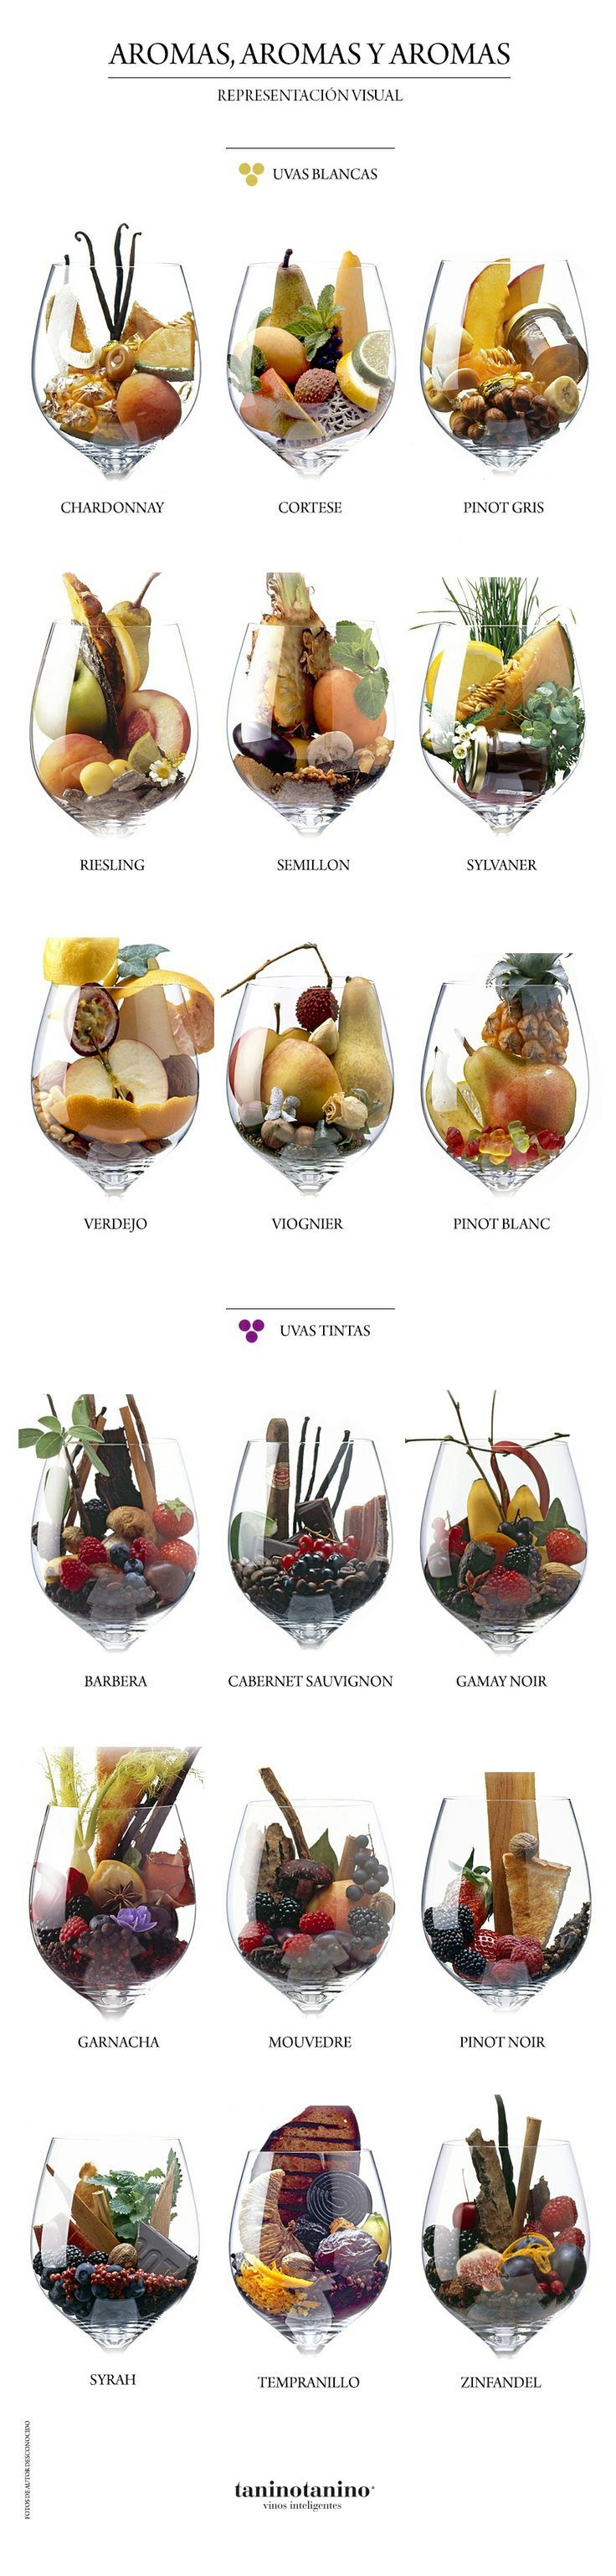 #KatieSheaDesign ♡❤ ❥▶ Classic aromas found in grapes #Wine